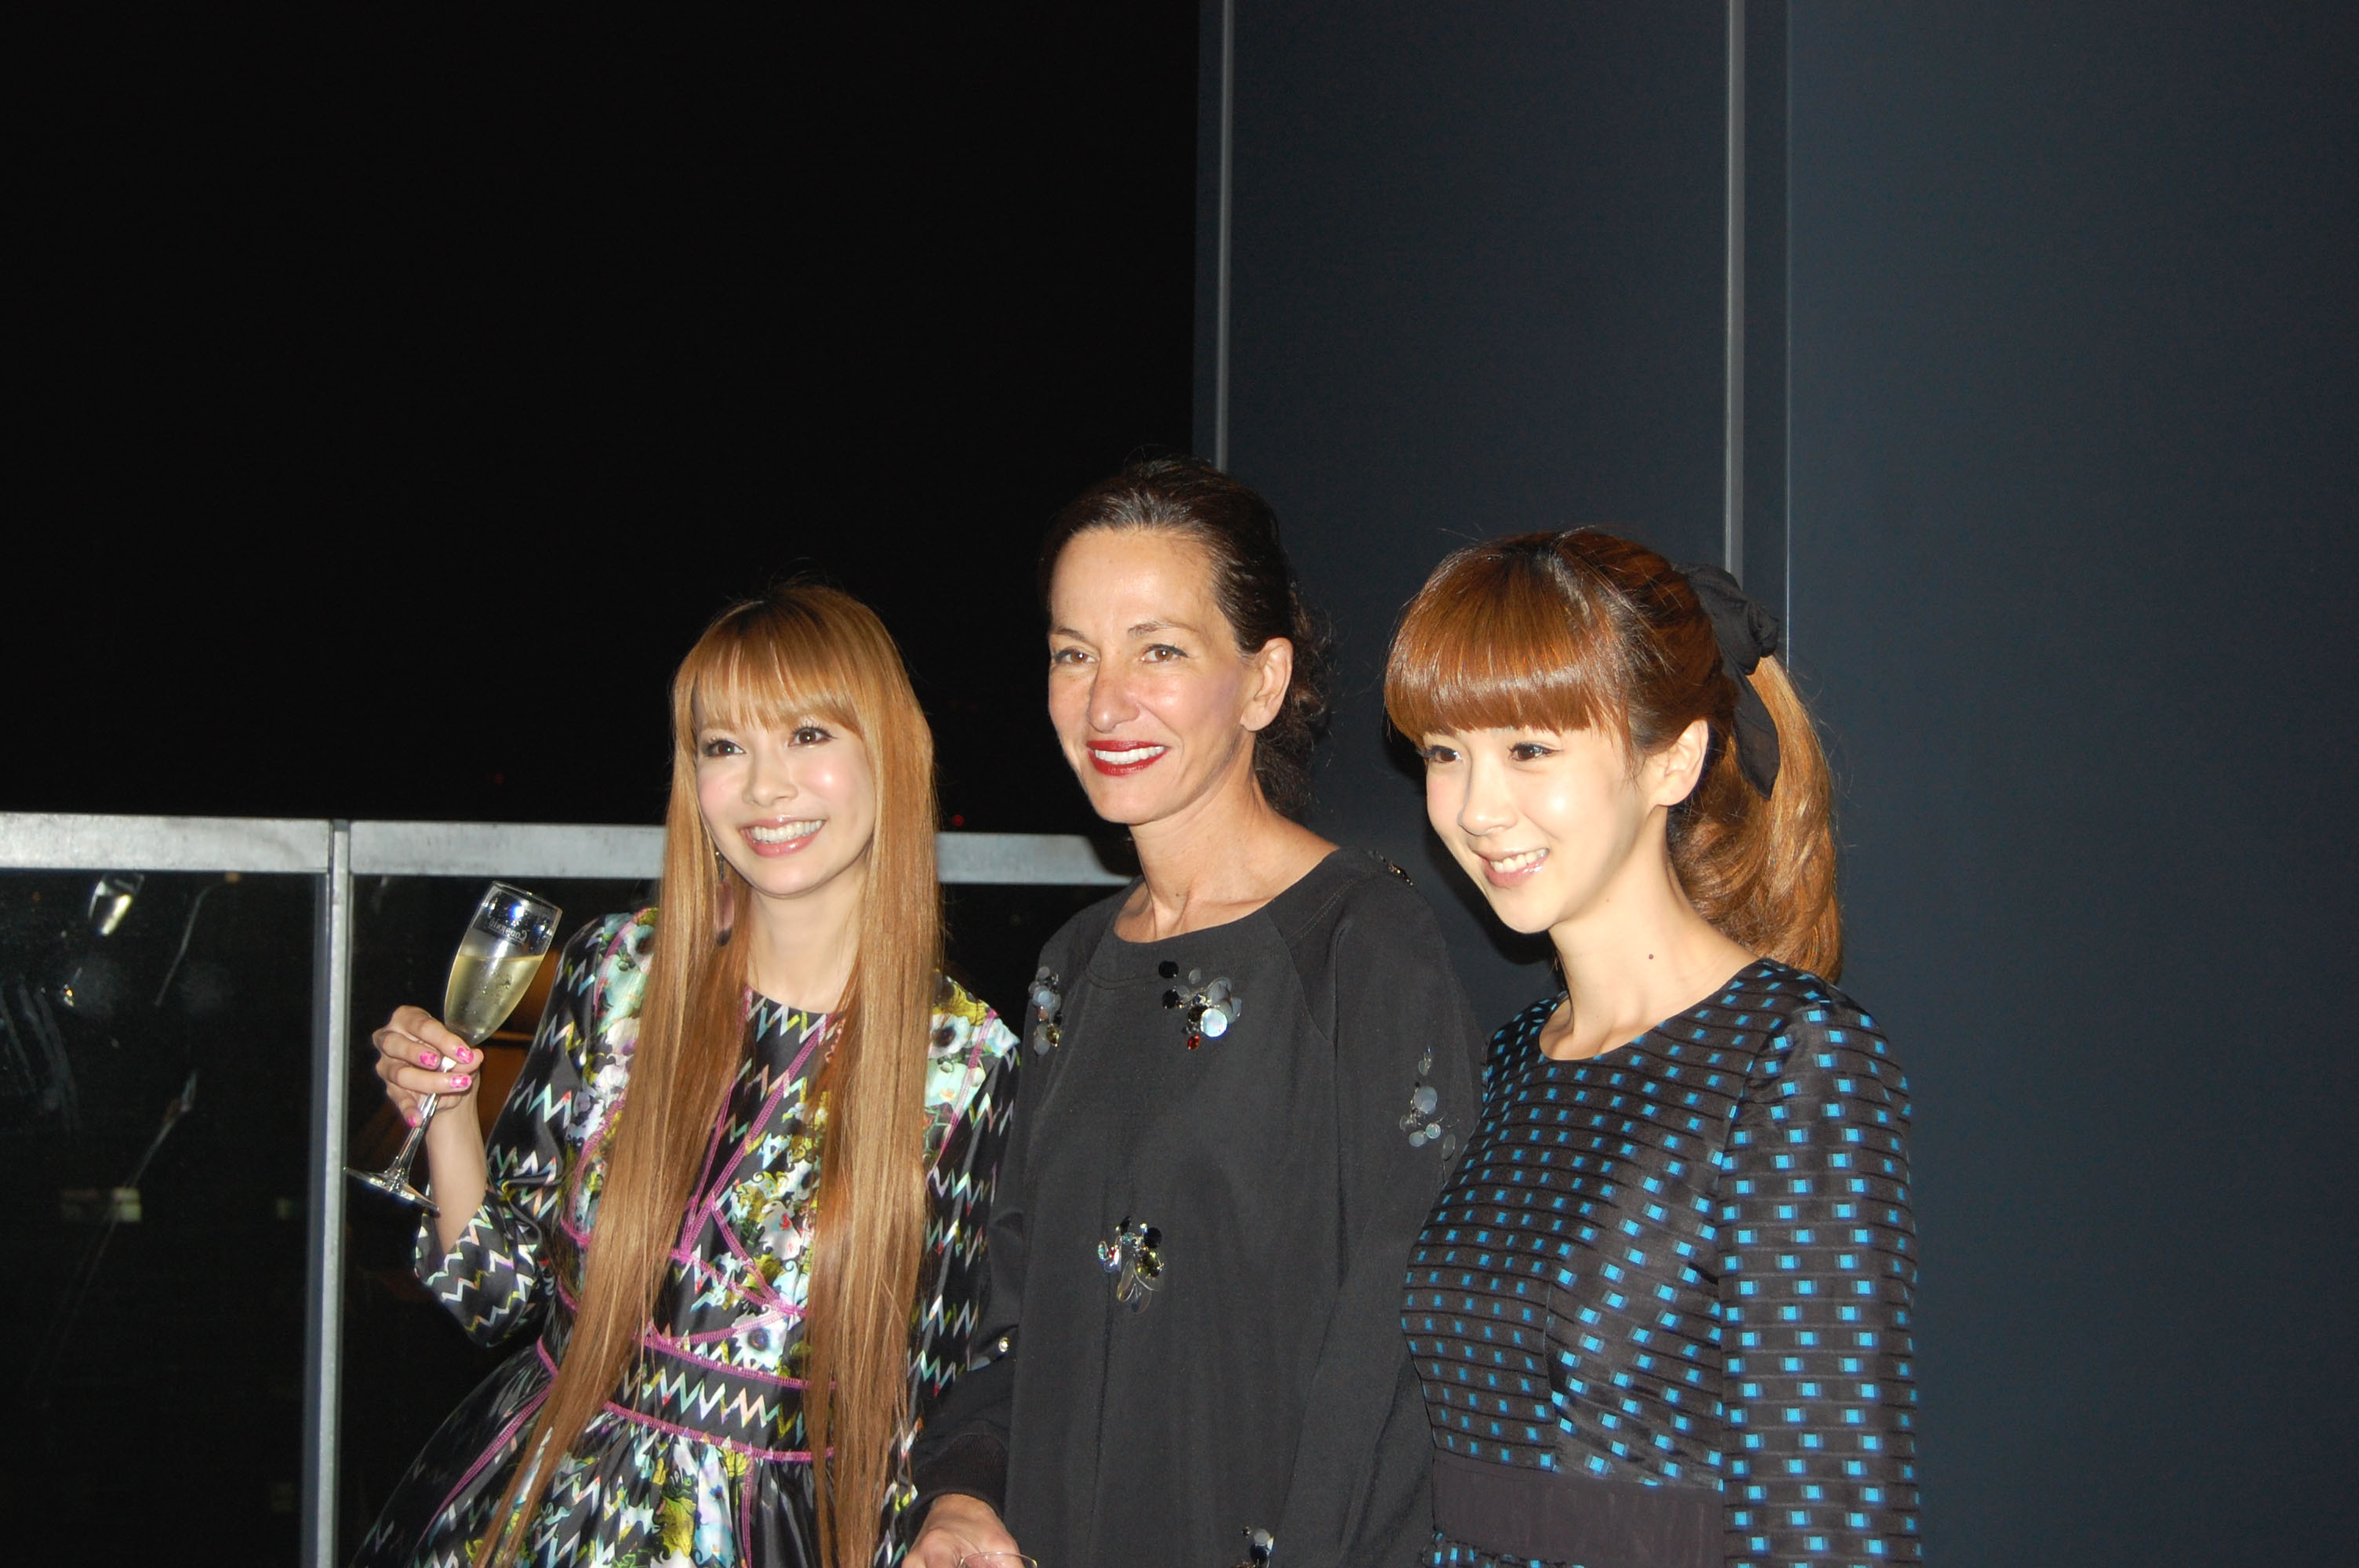 A decade of decadence: Designer Cynthia Rowley (center) poses with TV personalities Sakura Uehara (left) and Aki Hoshino (right) during a recent visit to Tokyo. Rowley was in the city to mark her 10th year of doing business here. | JFWO